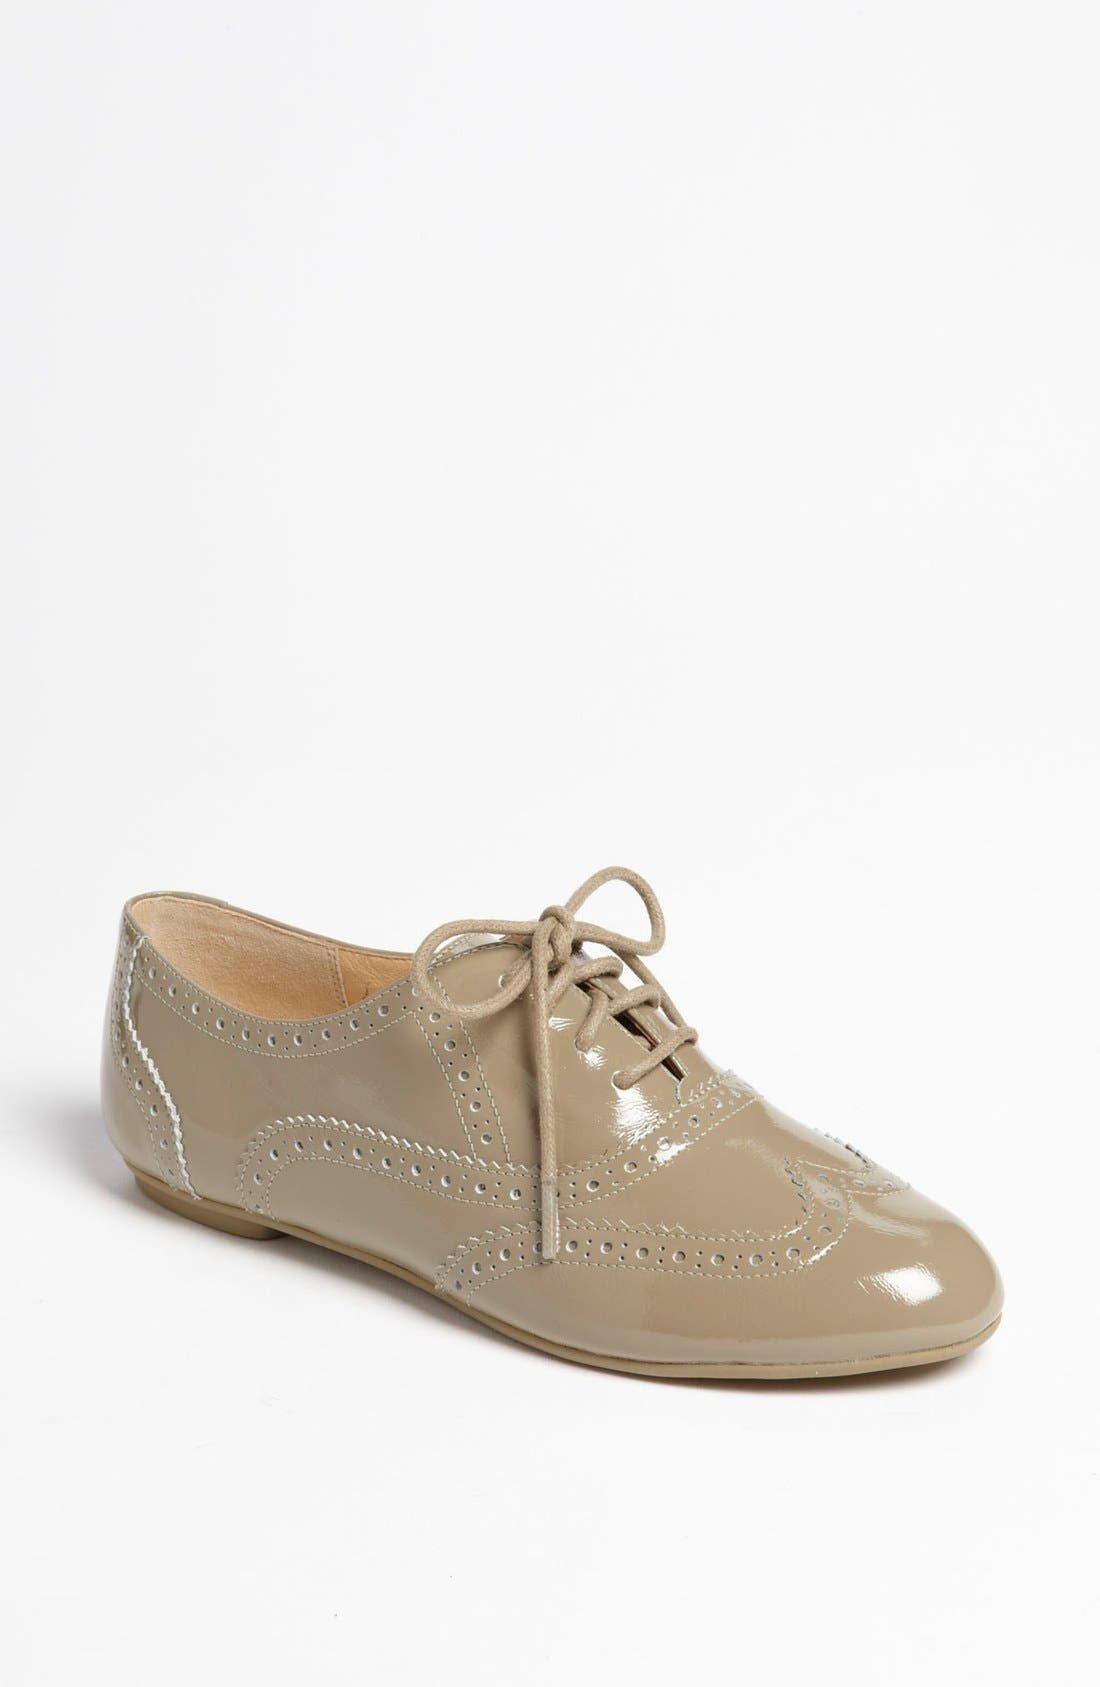 Main Image - Cole Haan 'Tompkins' Oxford